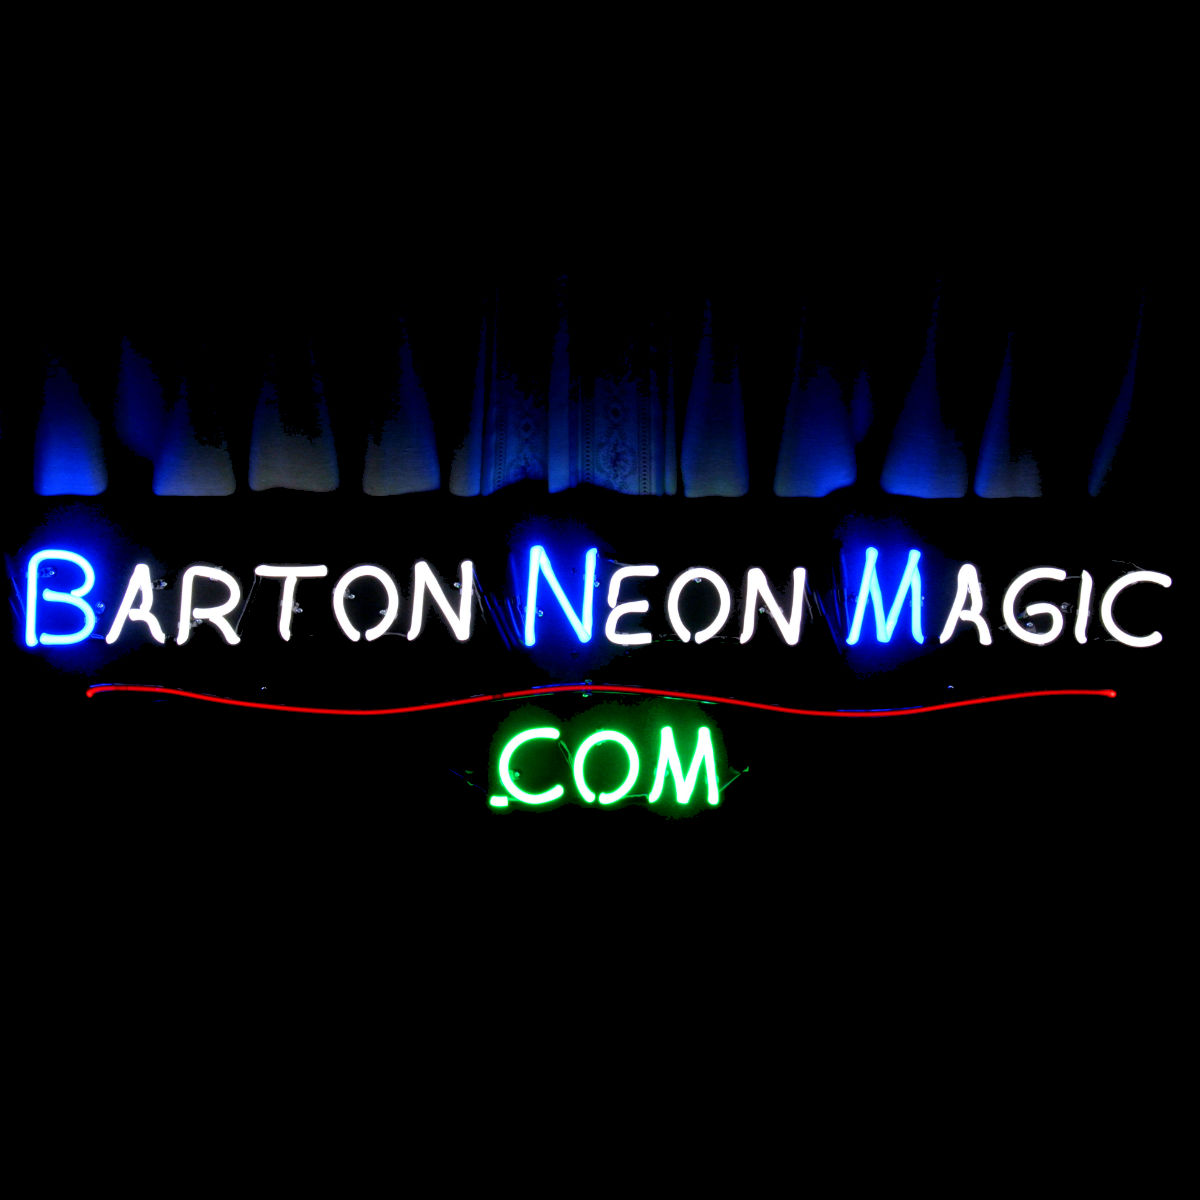 BRILLIANT CUSTOM HAND-BLOWN DESIGNER NEON LIGHTING BY JOHN BARTON - BartonNeonMagic.com